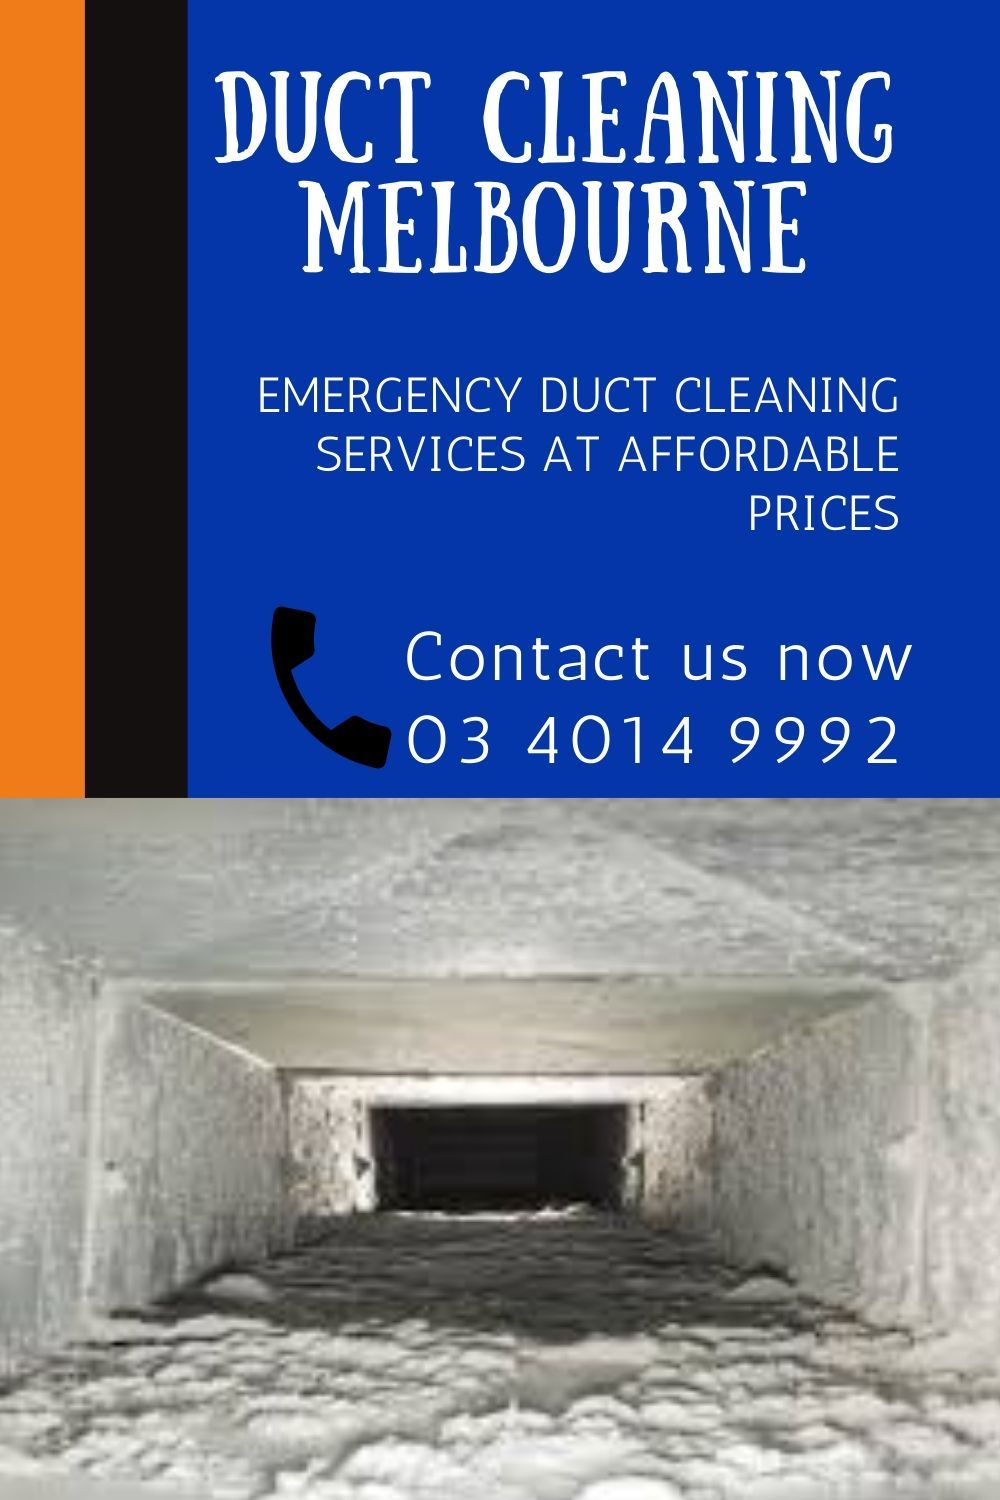 Emergency Duct Cleaning Services in Melbourne in 2020